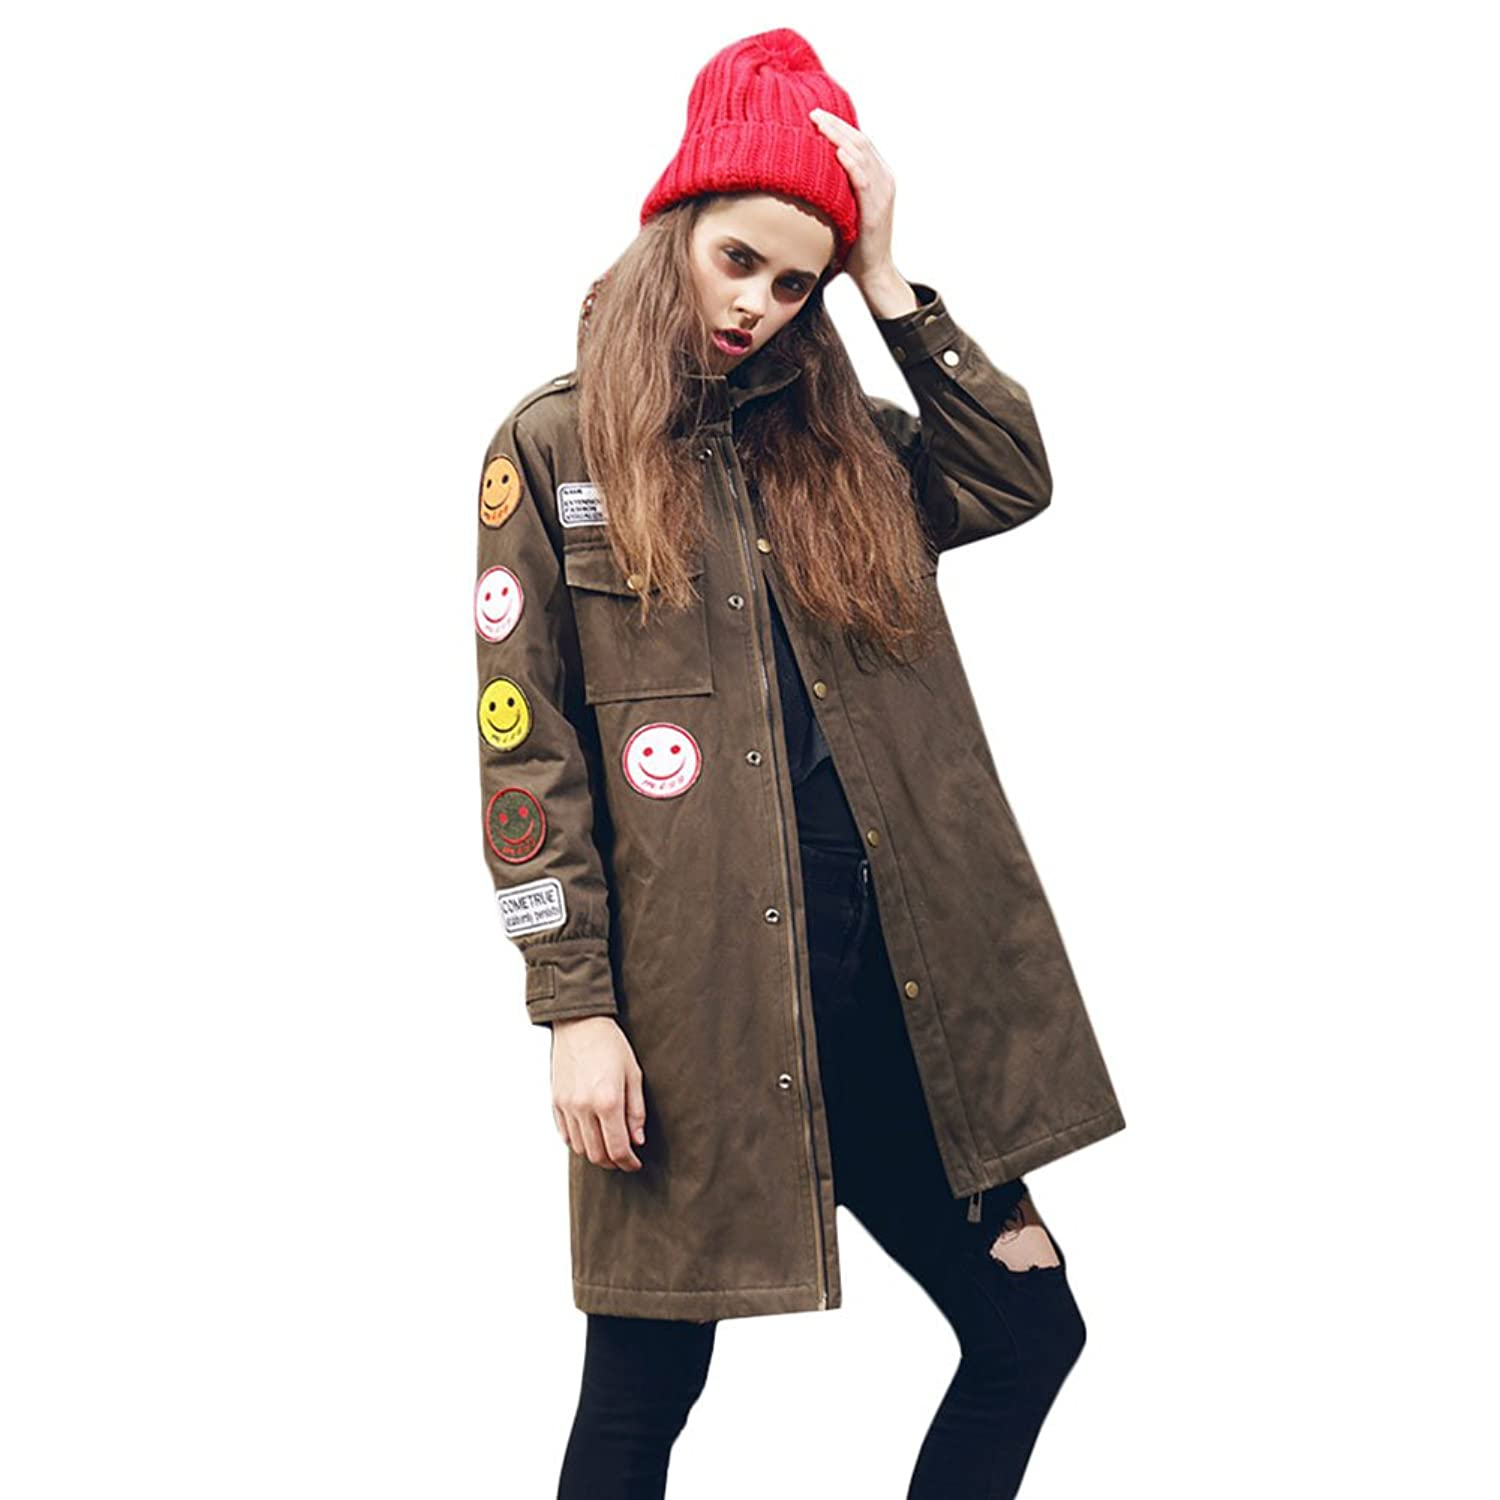 KE Womens Retro Winter verdicken Cotton-padded Badge Trenchcoat Lächeln Puppe Military Mantel